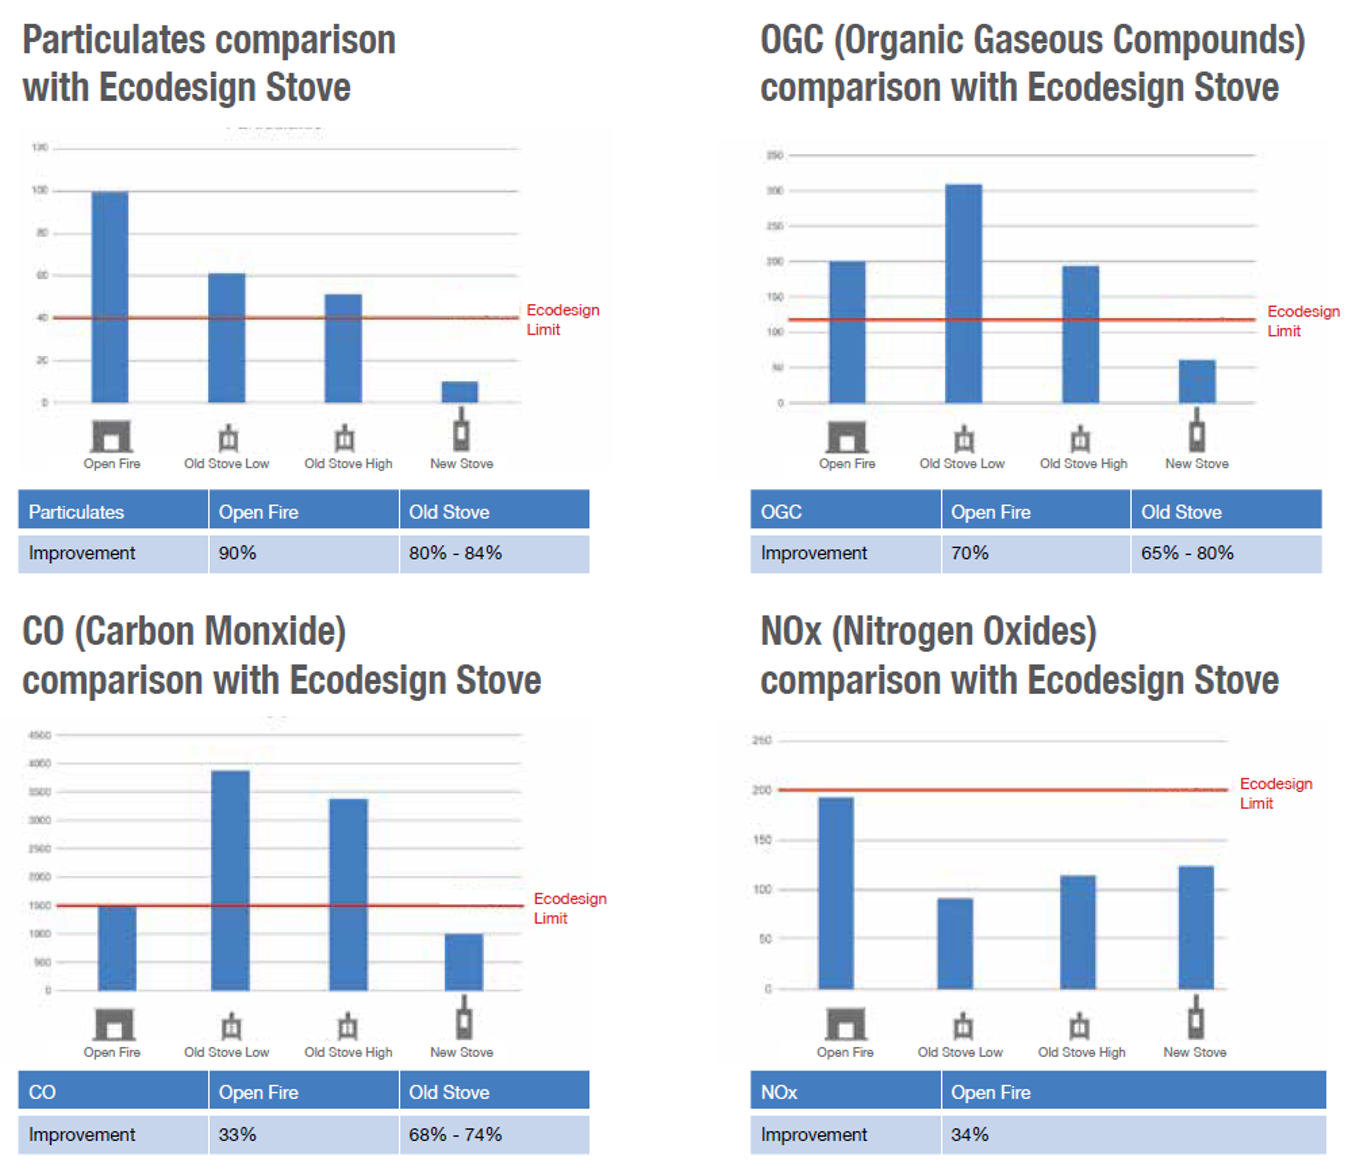 Modern Ecodesign reduces Particle Emissions by up to 90%